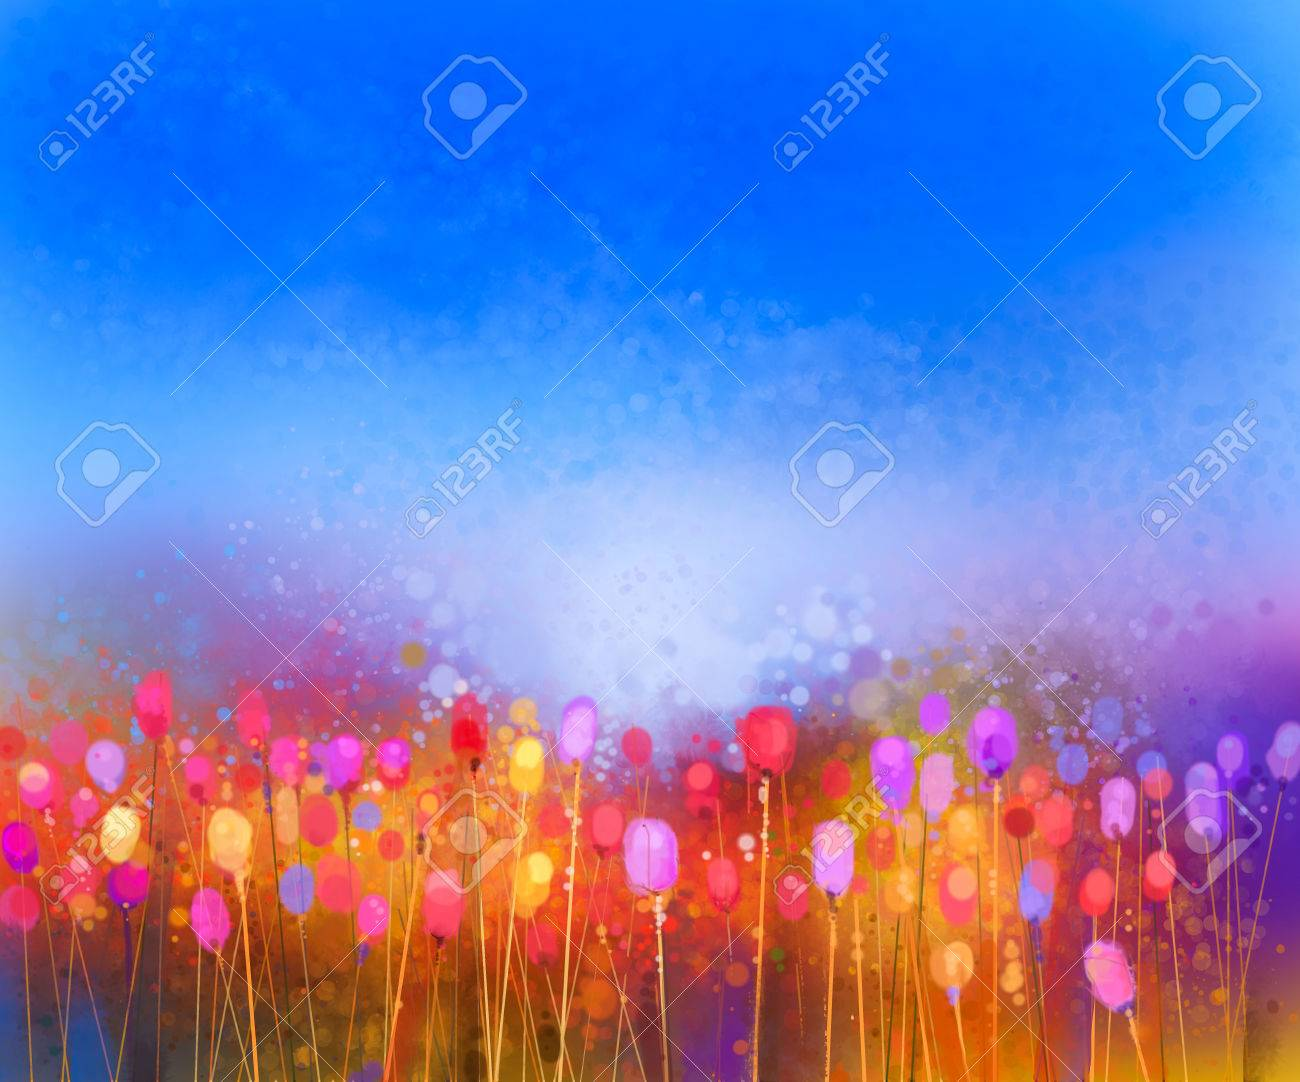 Abstract tulip flower field watercolor painting. Hand painted yellow red flowers in soft color with blue sky. Abstract floral paintings in the meadows. Spring flower seasonal nature background - 55157490